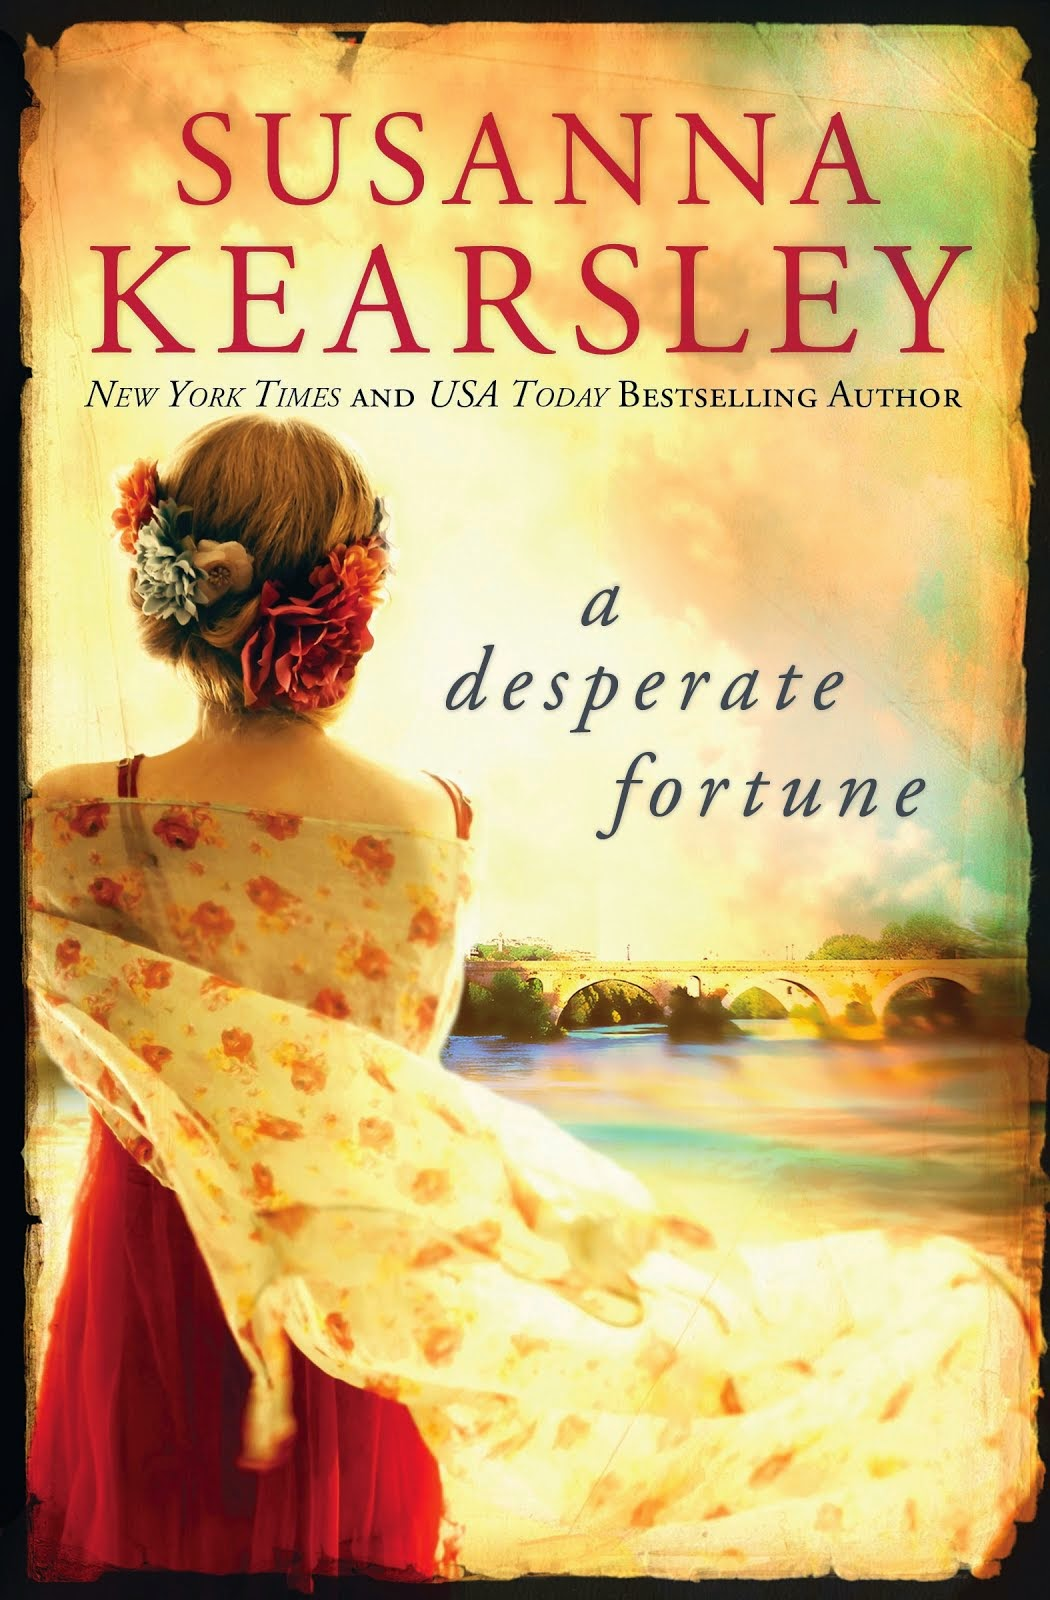 Giveaway - Susanna Kearsley Prize Pack of All of her Backlist of Books Published by Sourcebooks